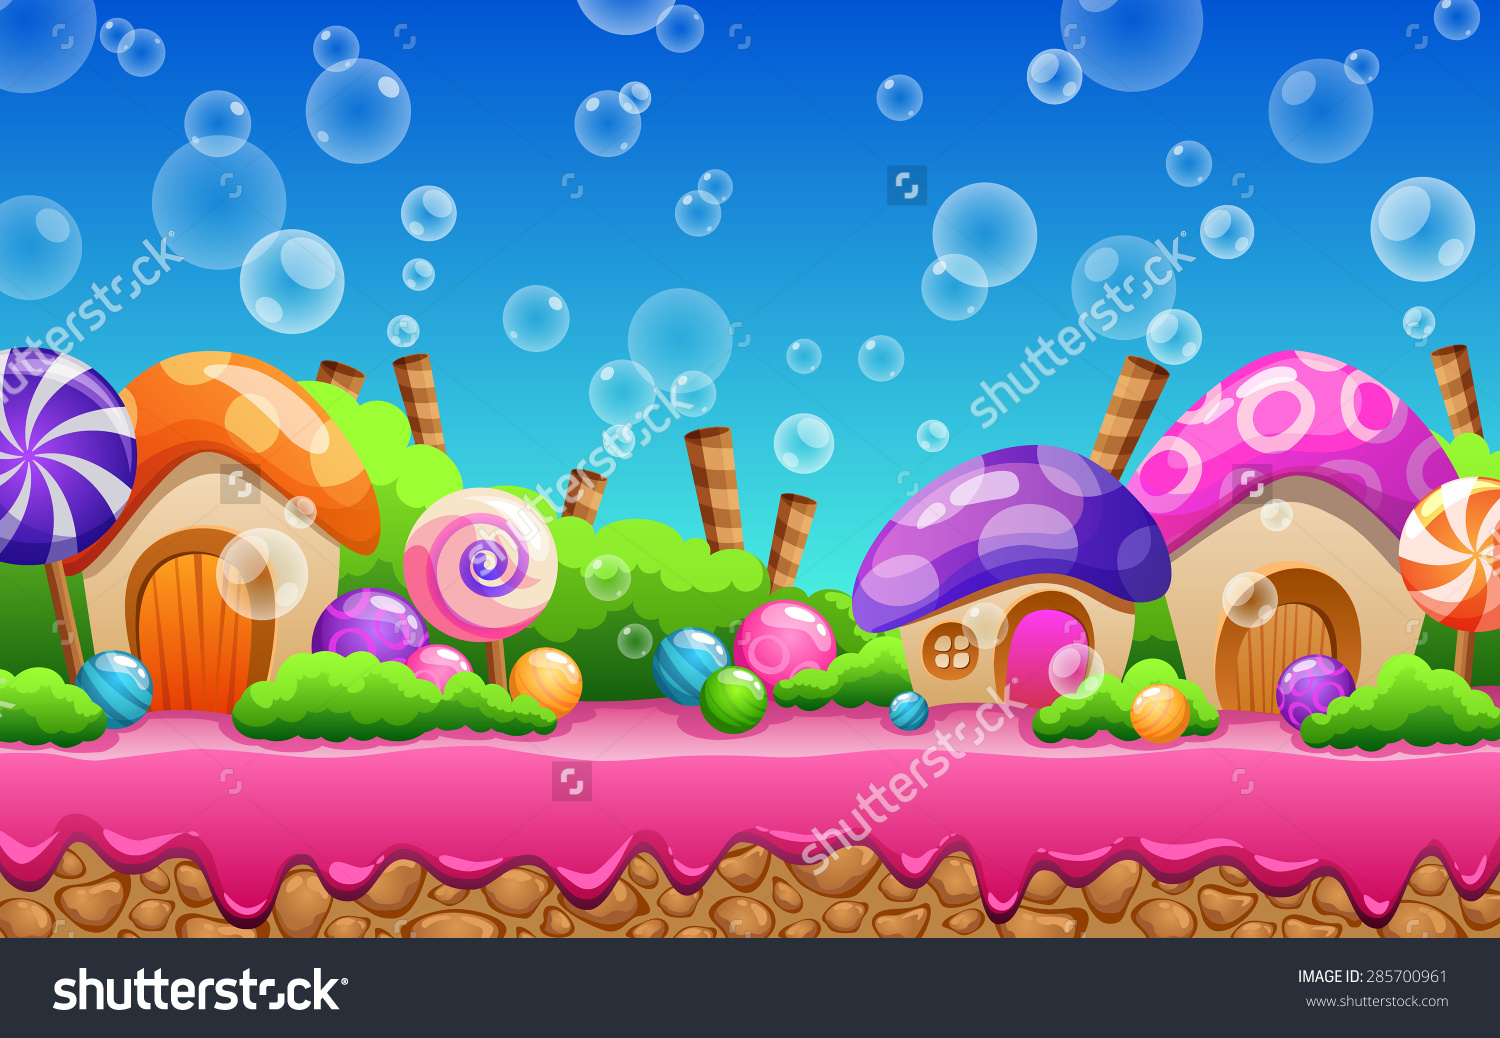 Cartoon Fairy Tale Landscape Candy Land Stock Vector 285700961.